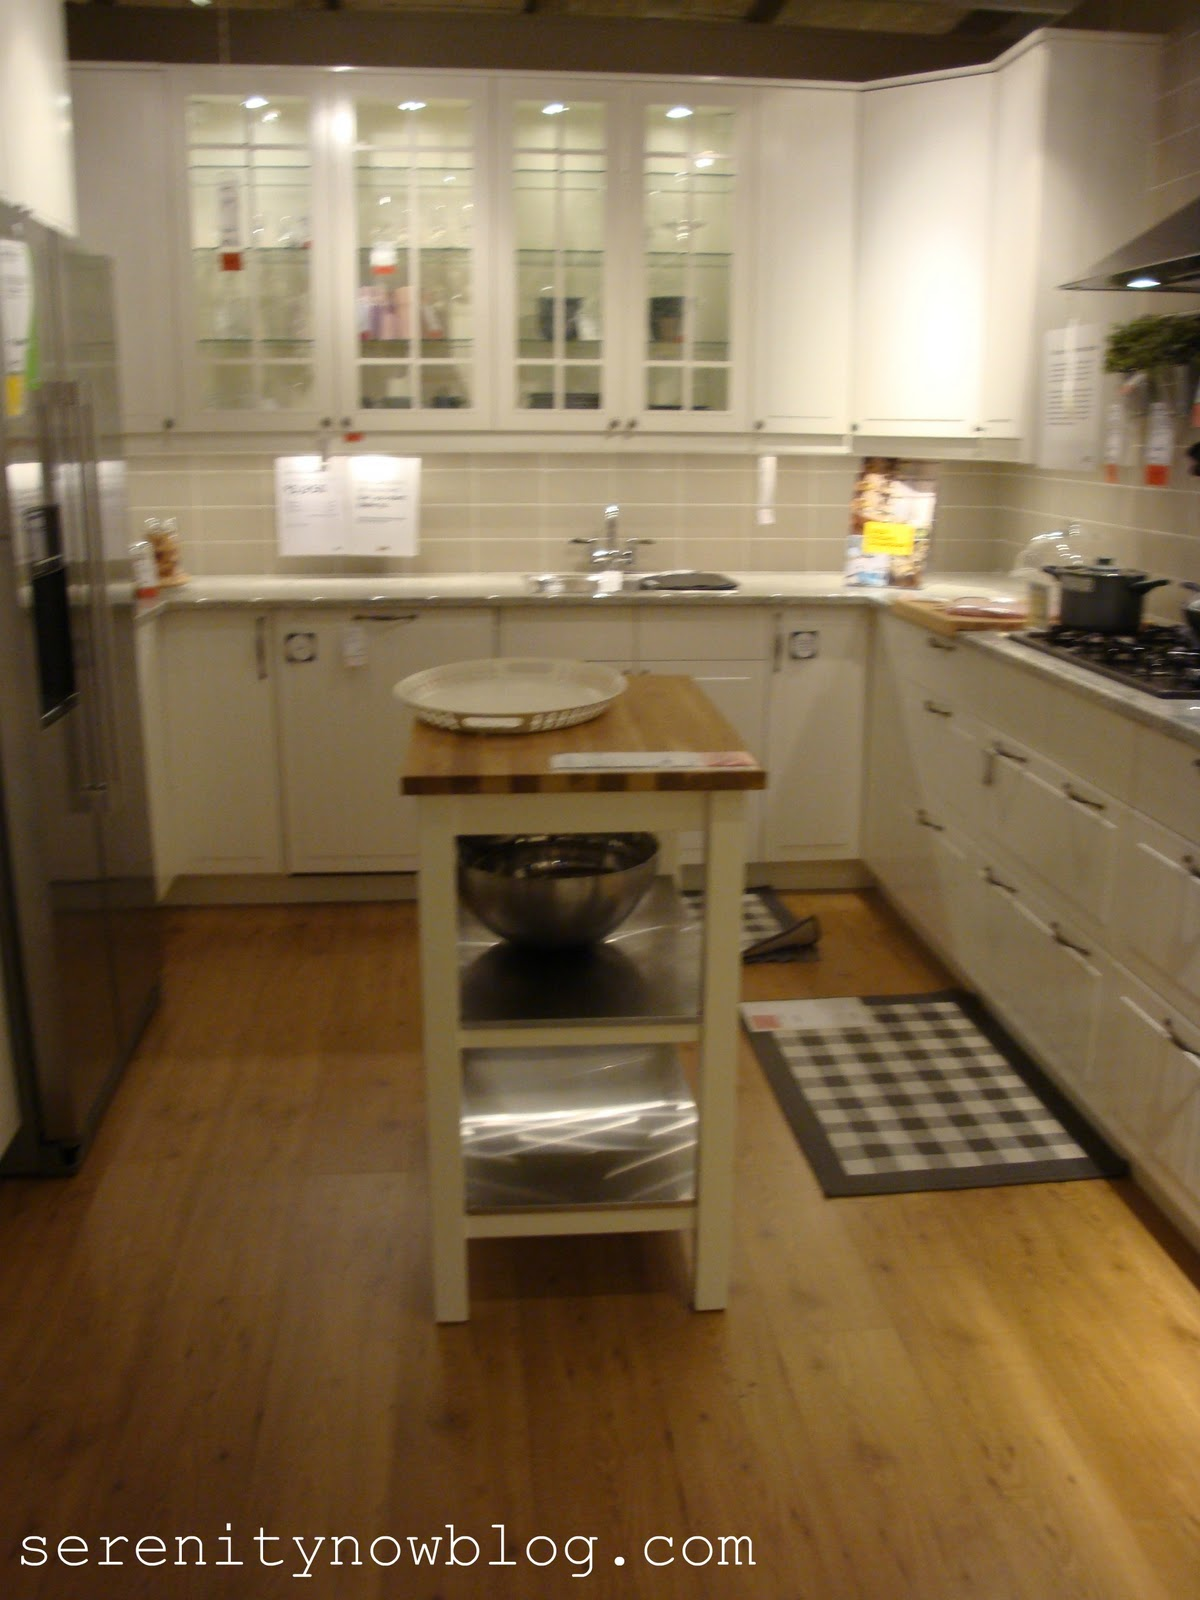 Serenity now ikea decorating inspiration our shopping fun for Ikea kitchen ideas pictures